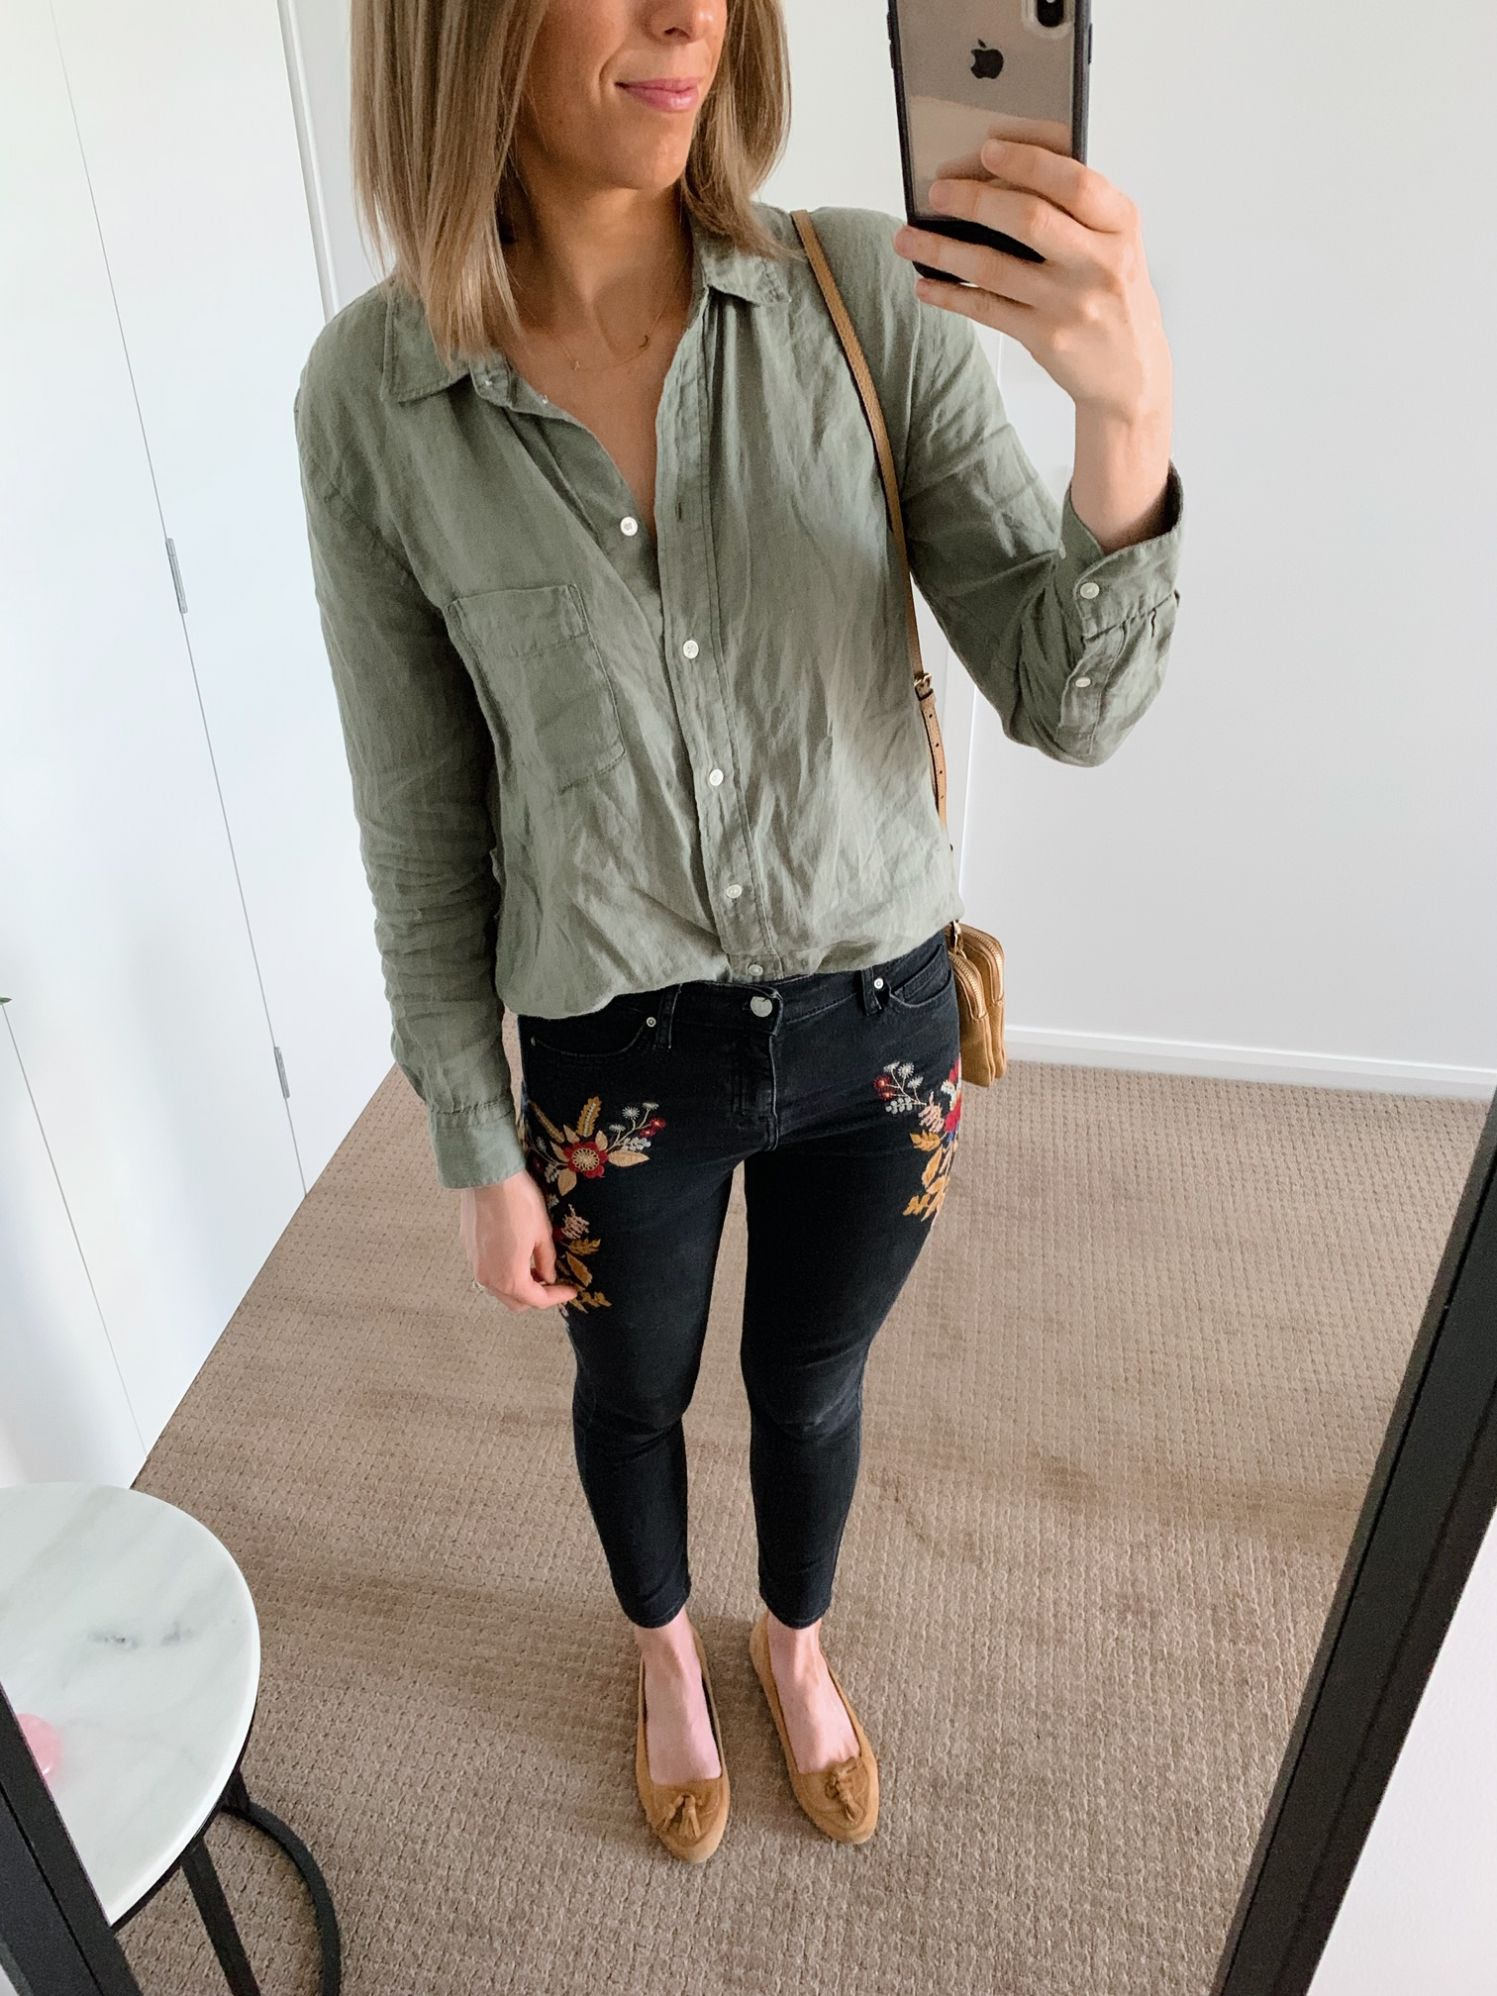 olive green linen shirt and embroidered topshop jeans fashion blogger outfit ideas pinterest style boho outfits